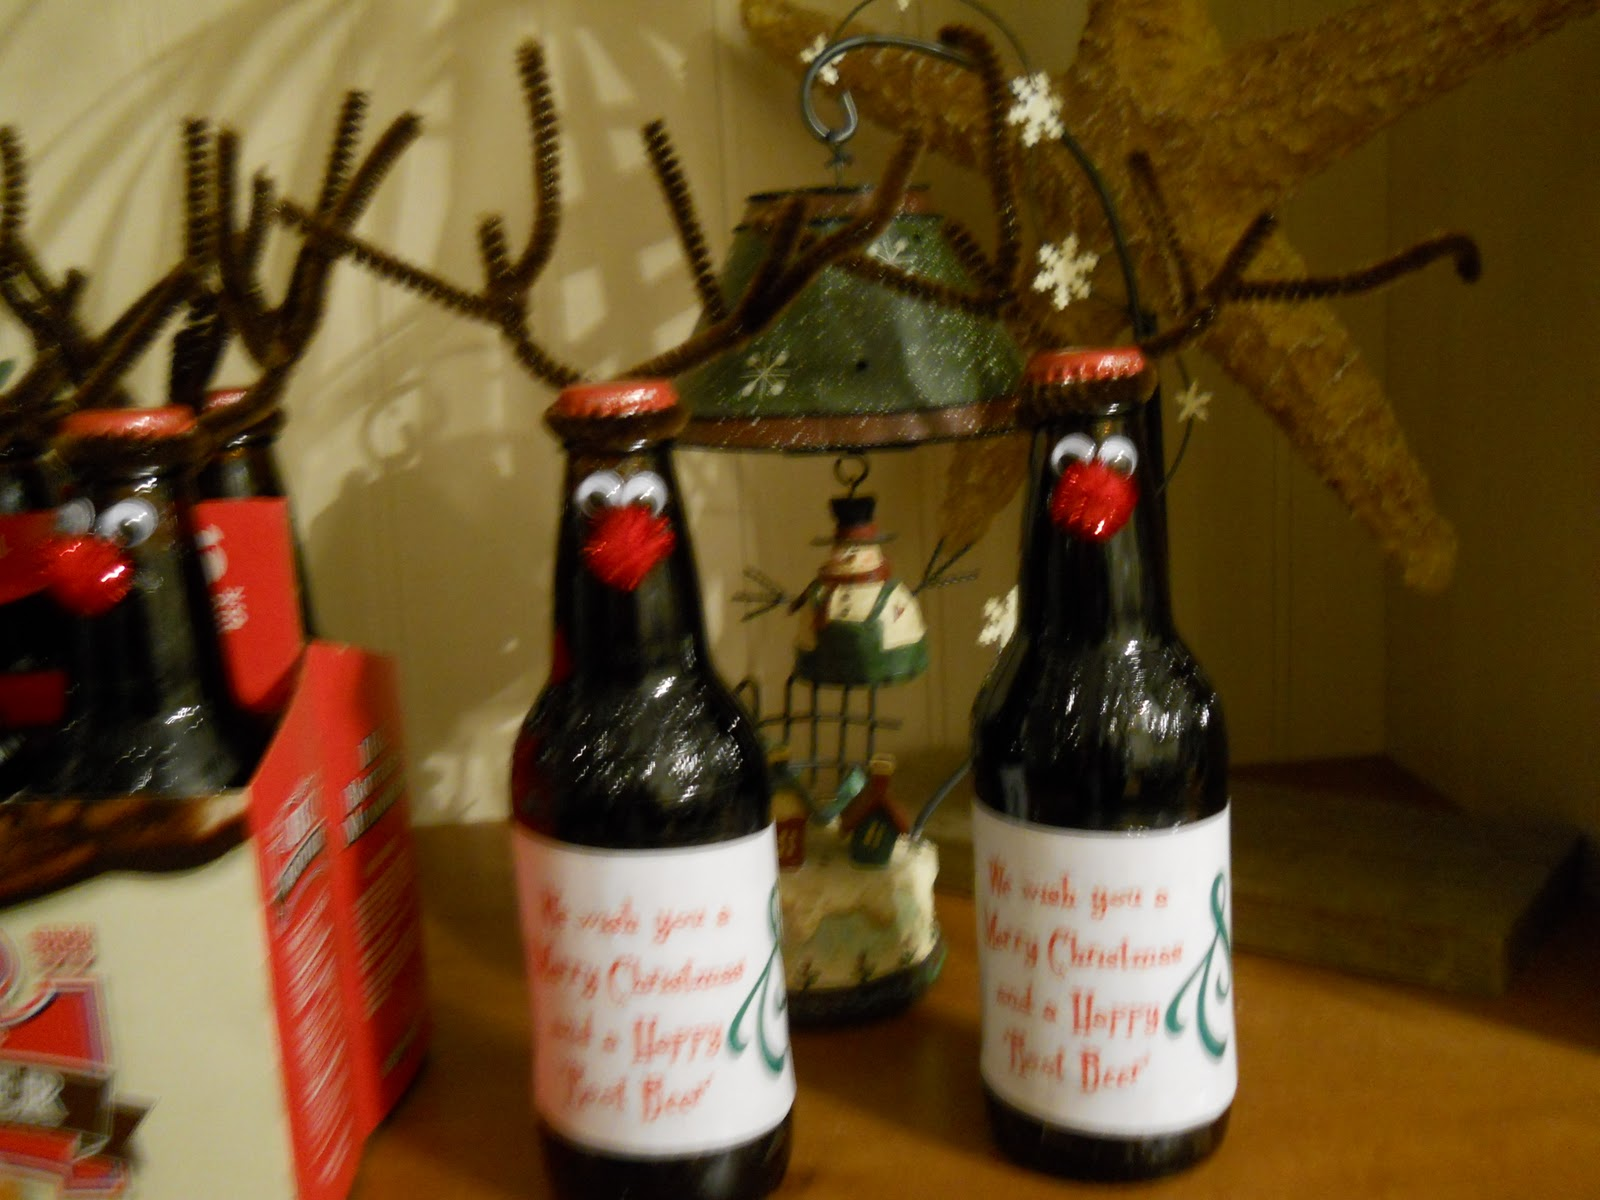 Creative Commotion: We wish you a Merry Christmas and a Happy Root Beer!